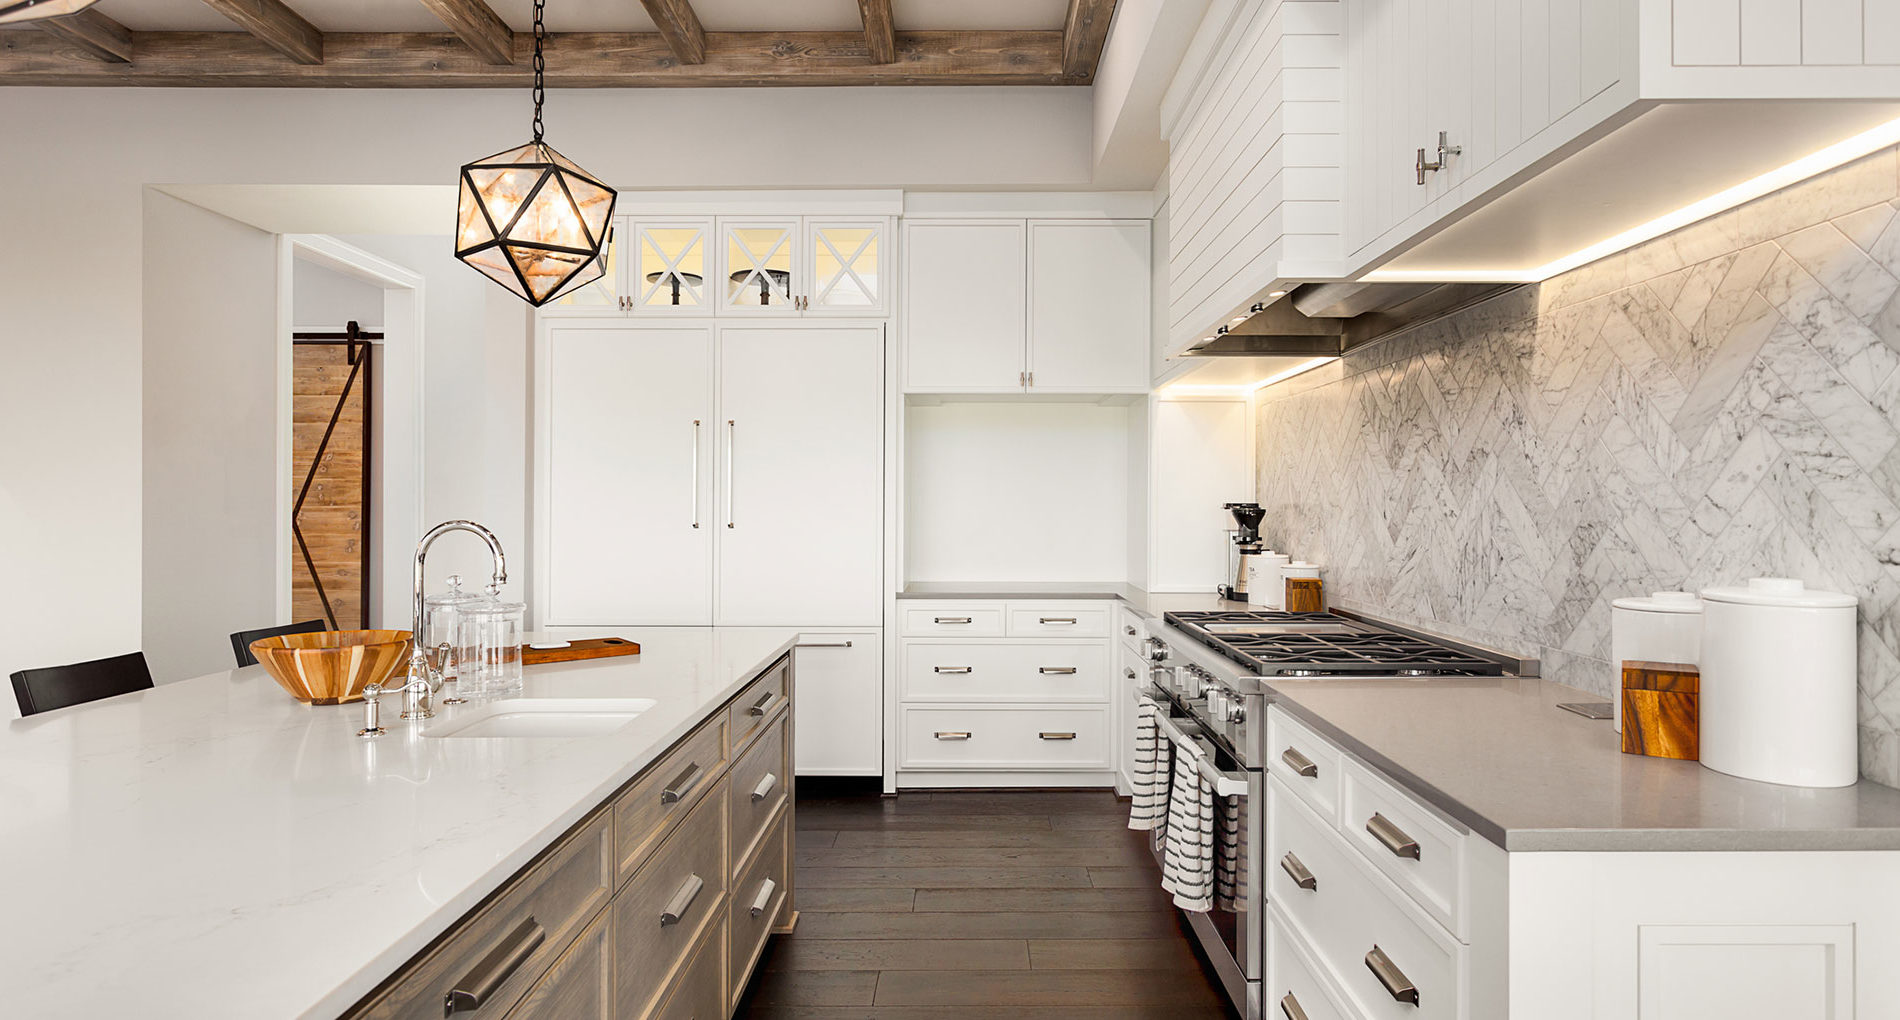 15 Unforgettable Charleston Kitchen Ideas